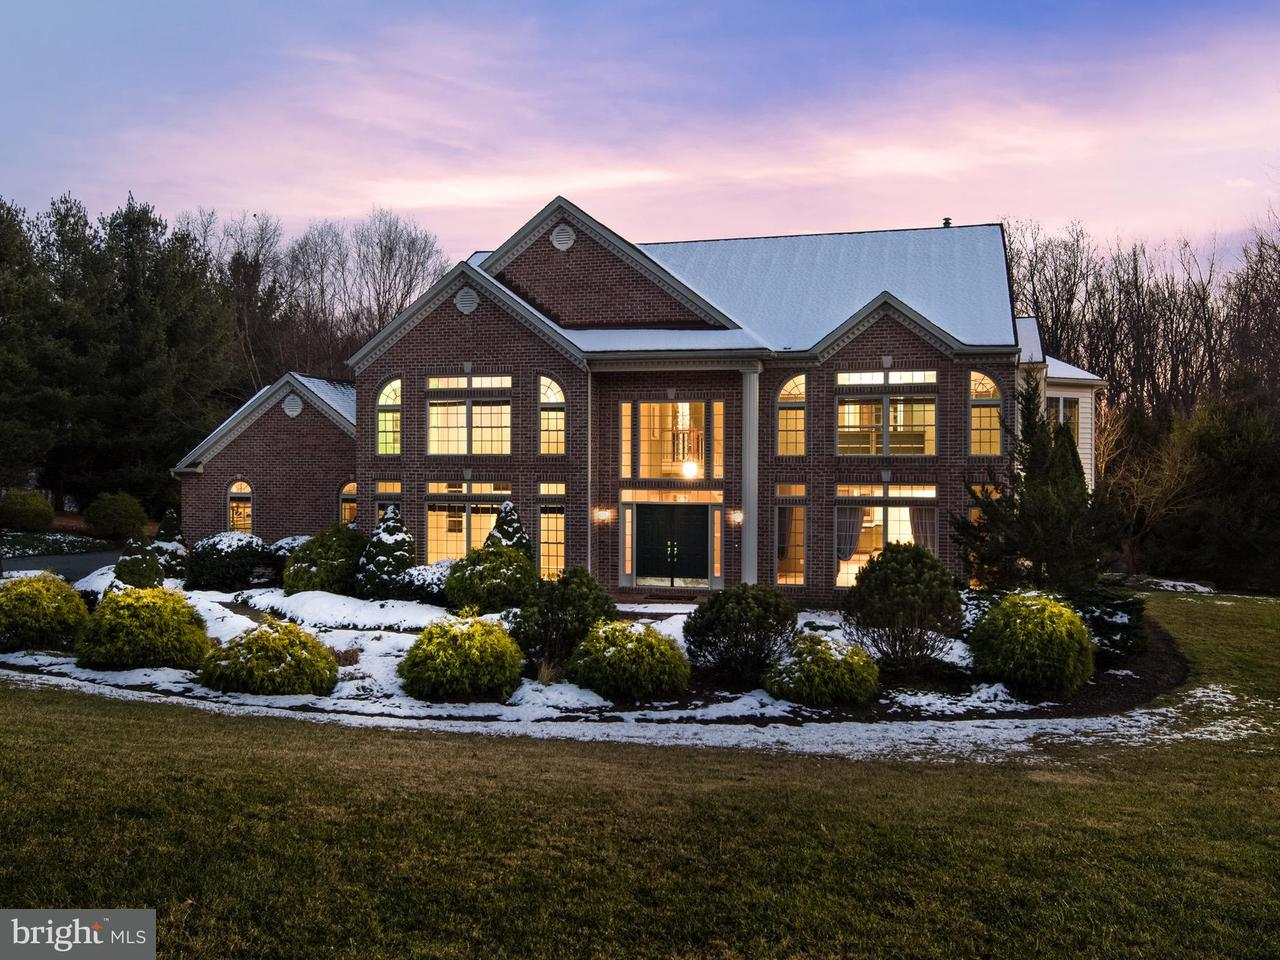 Single Family Home for Sale at 2664 BALDWIN MILL Road 2664 BALDWIN MILL Road Baldwin, Maryland 21013 United States